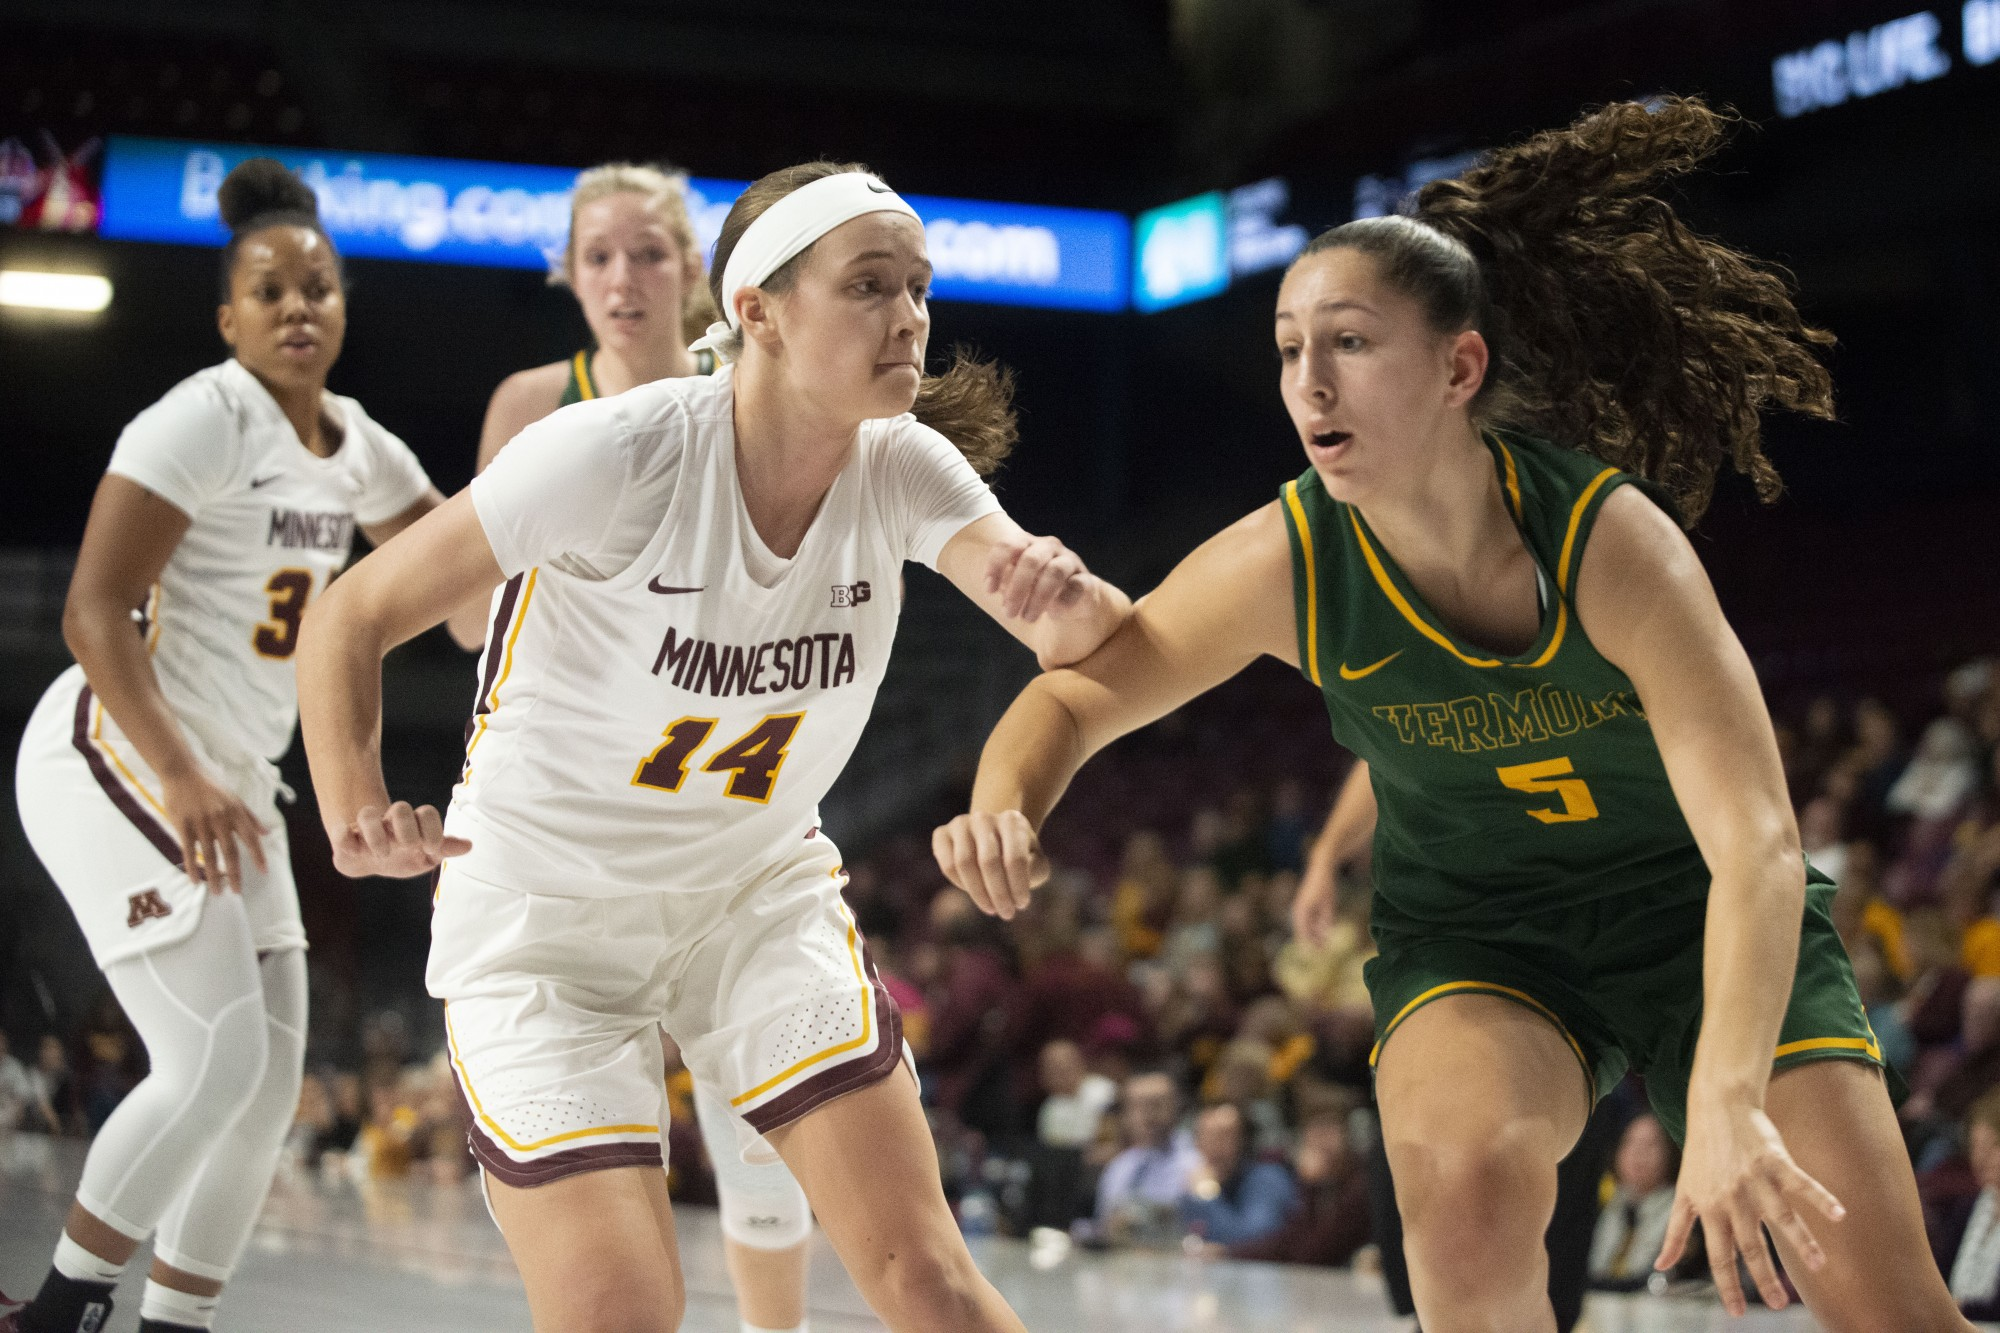 Guard Sara Scalia fights for the ball at Williams Arena on Sunday, Nov. 10. The Gophers defeated Vermont 90-58.